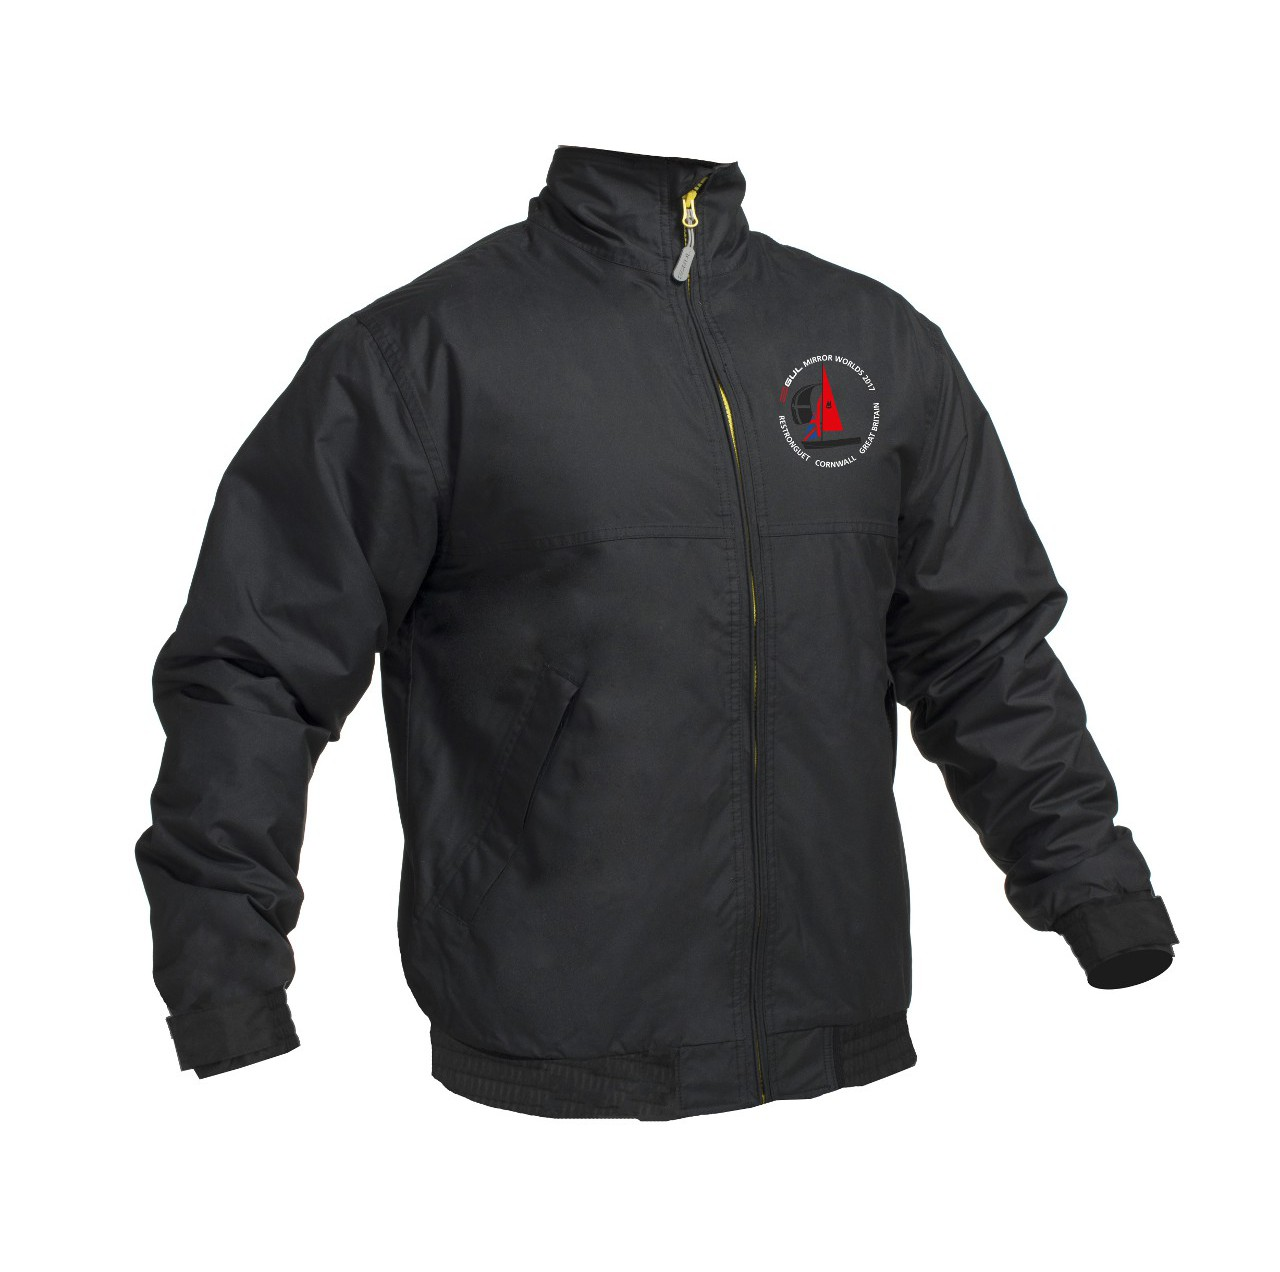 A black jacket with embroidered logo